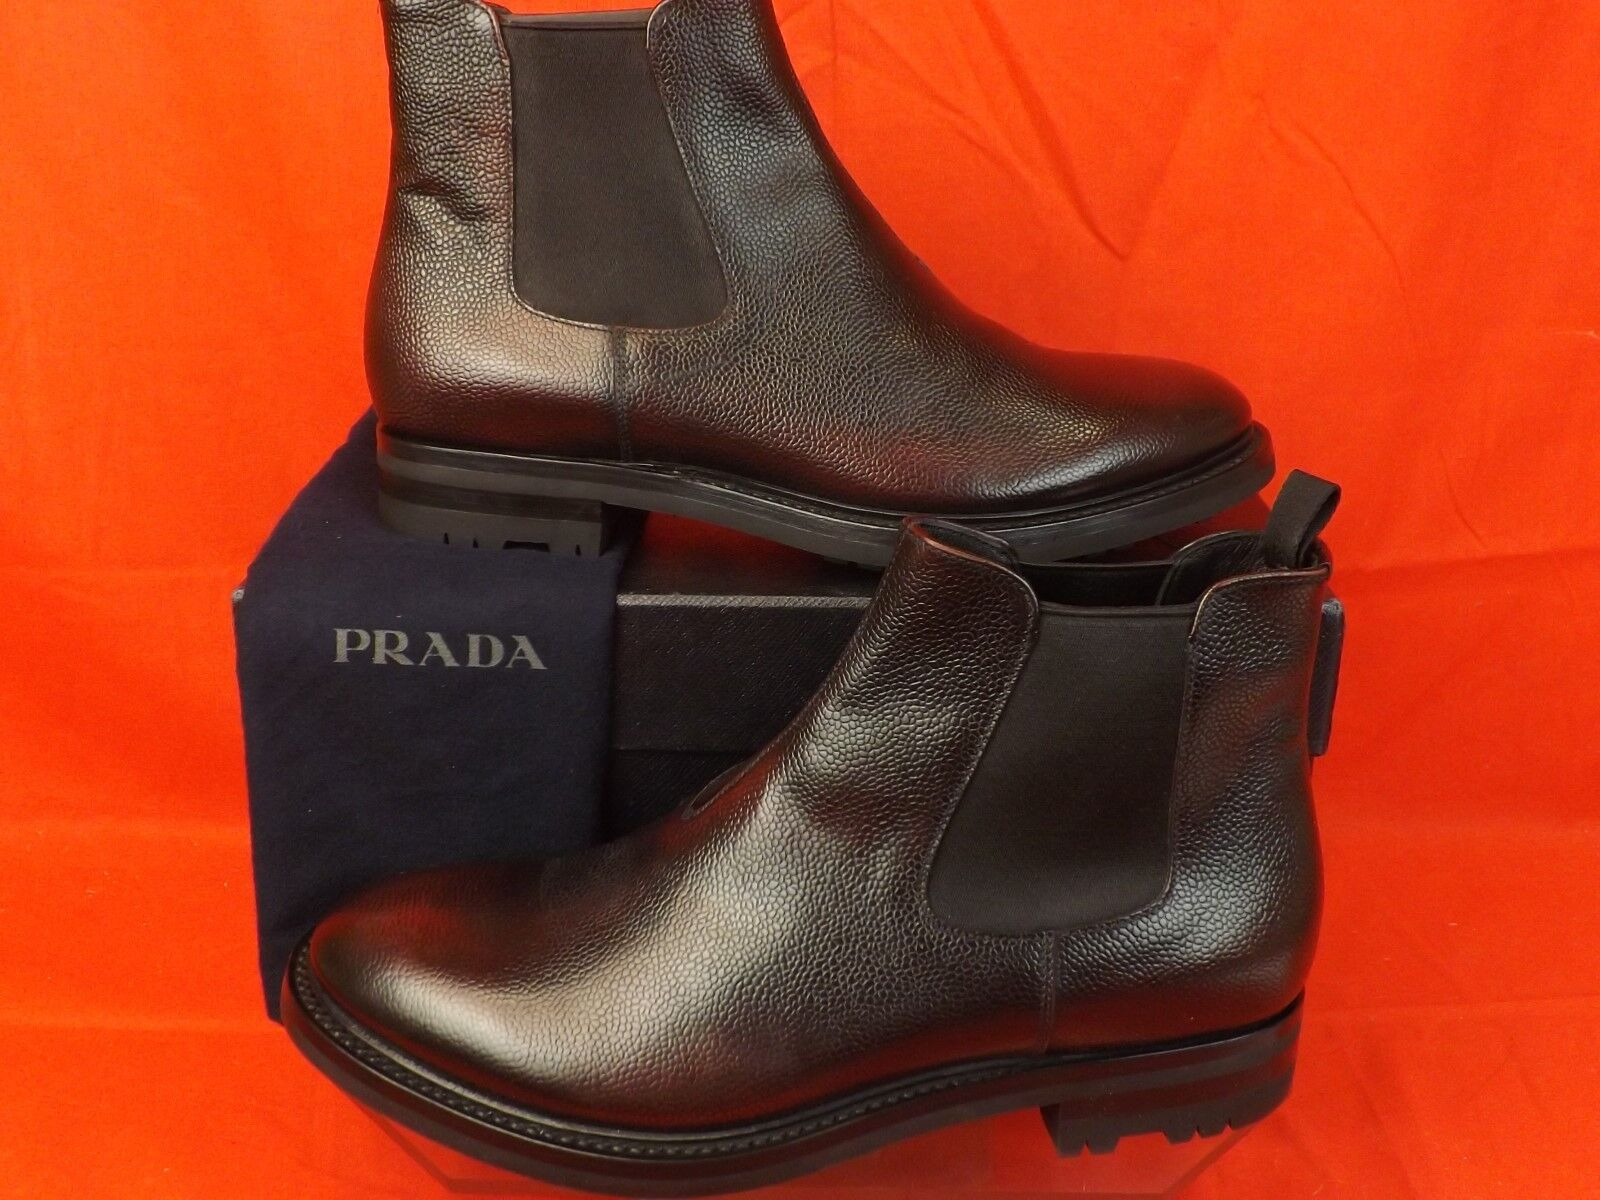 NIB PRADA BURGUNDY BURNISHED TEXTUrosso CHELSEA LEATHER ELASTICIZED stivali 9.5 10.5